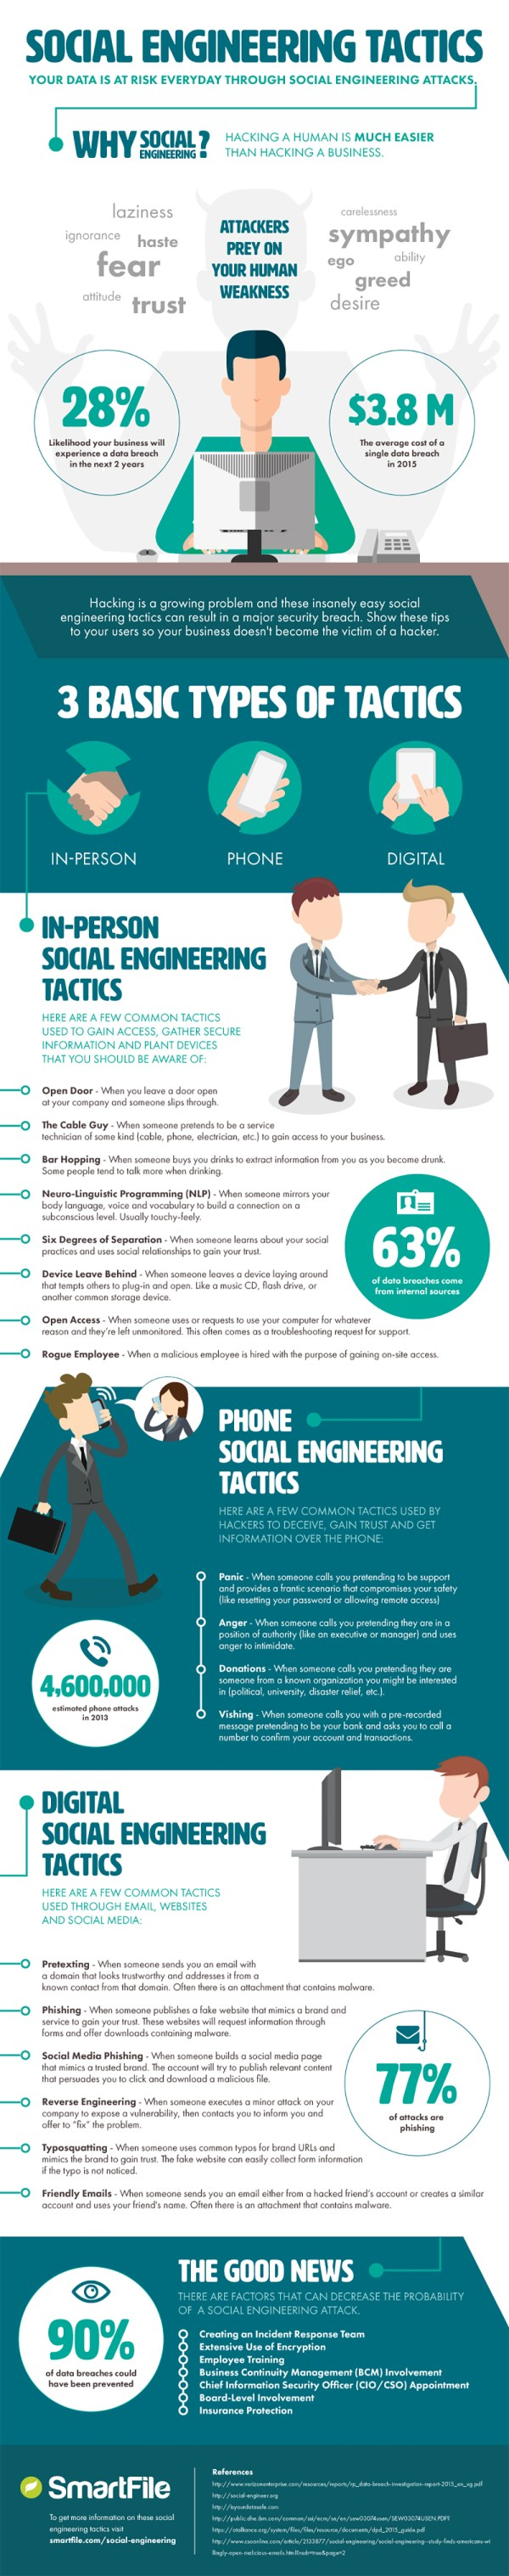 Infographic Social Engineering